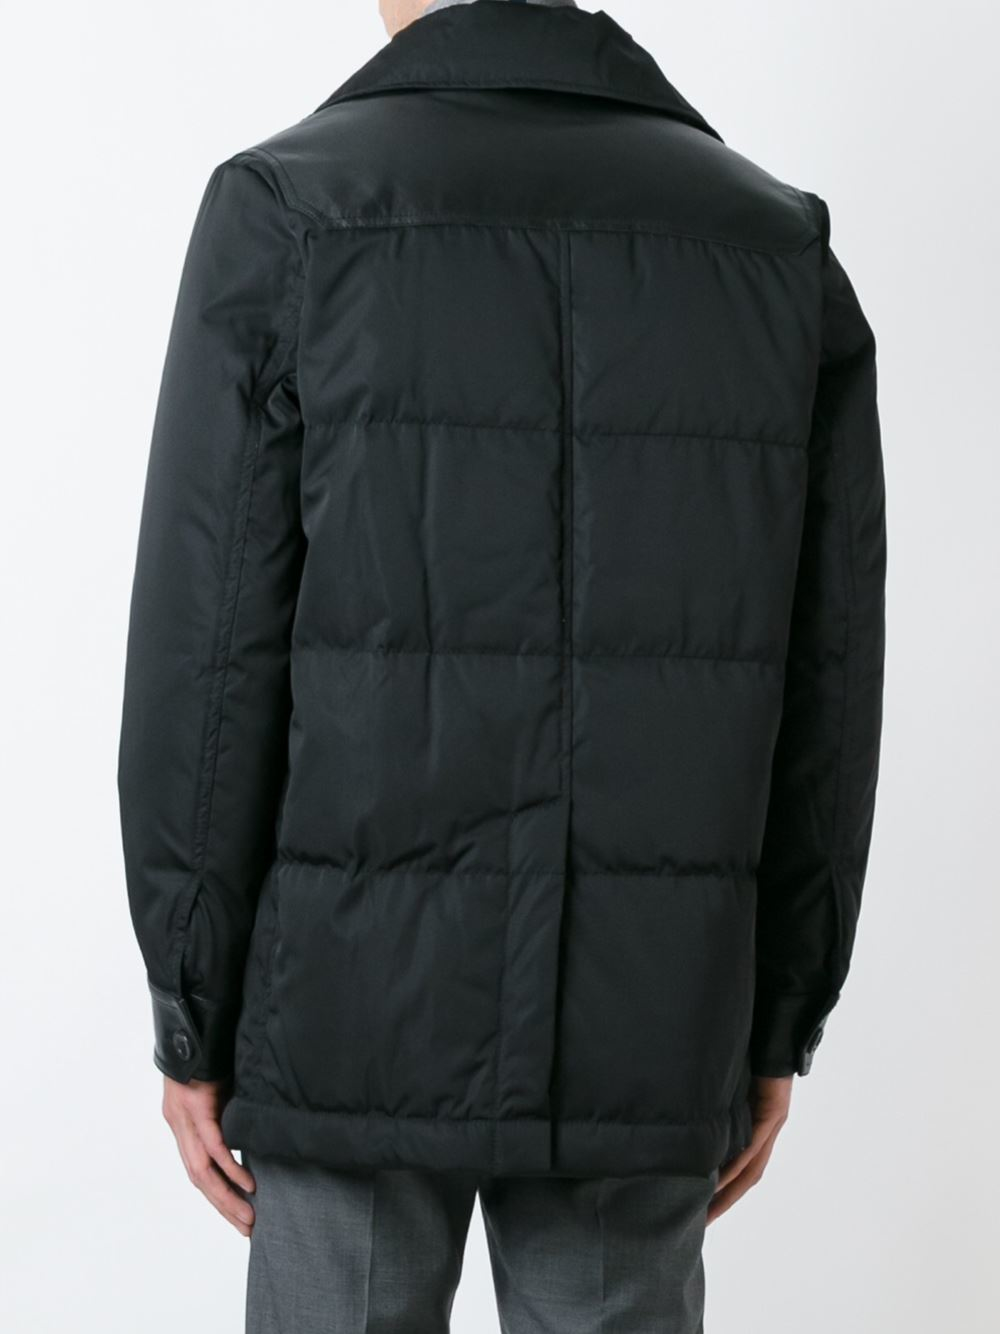 Bally Double Breasted Padded Jacket in Black for Men